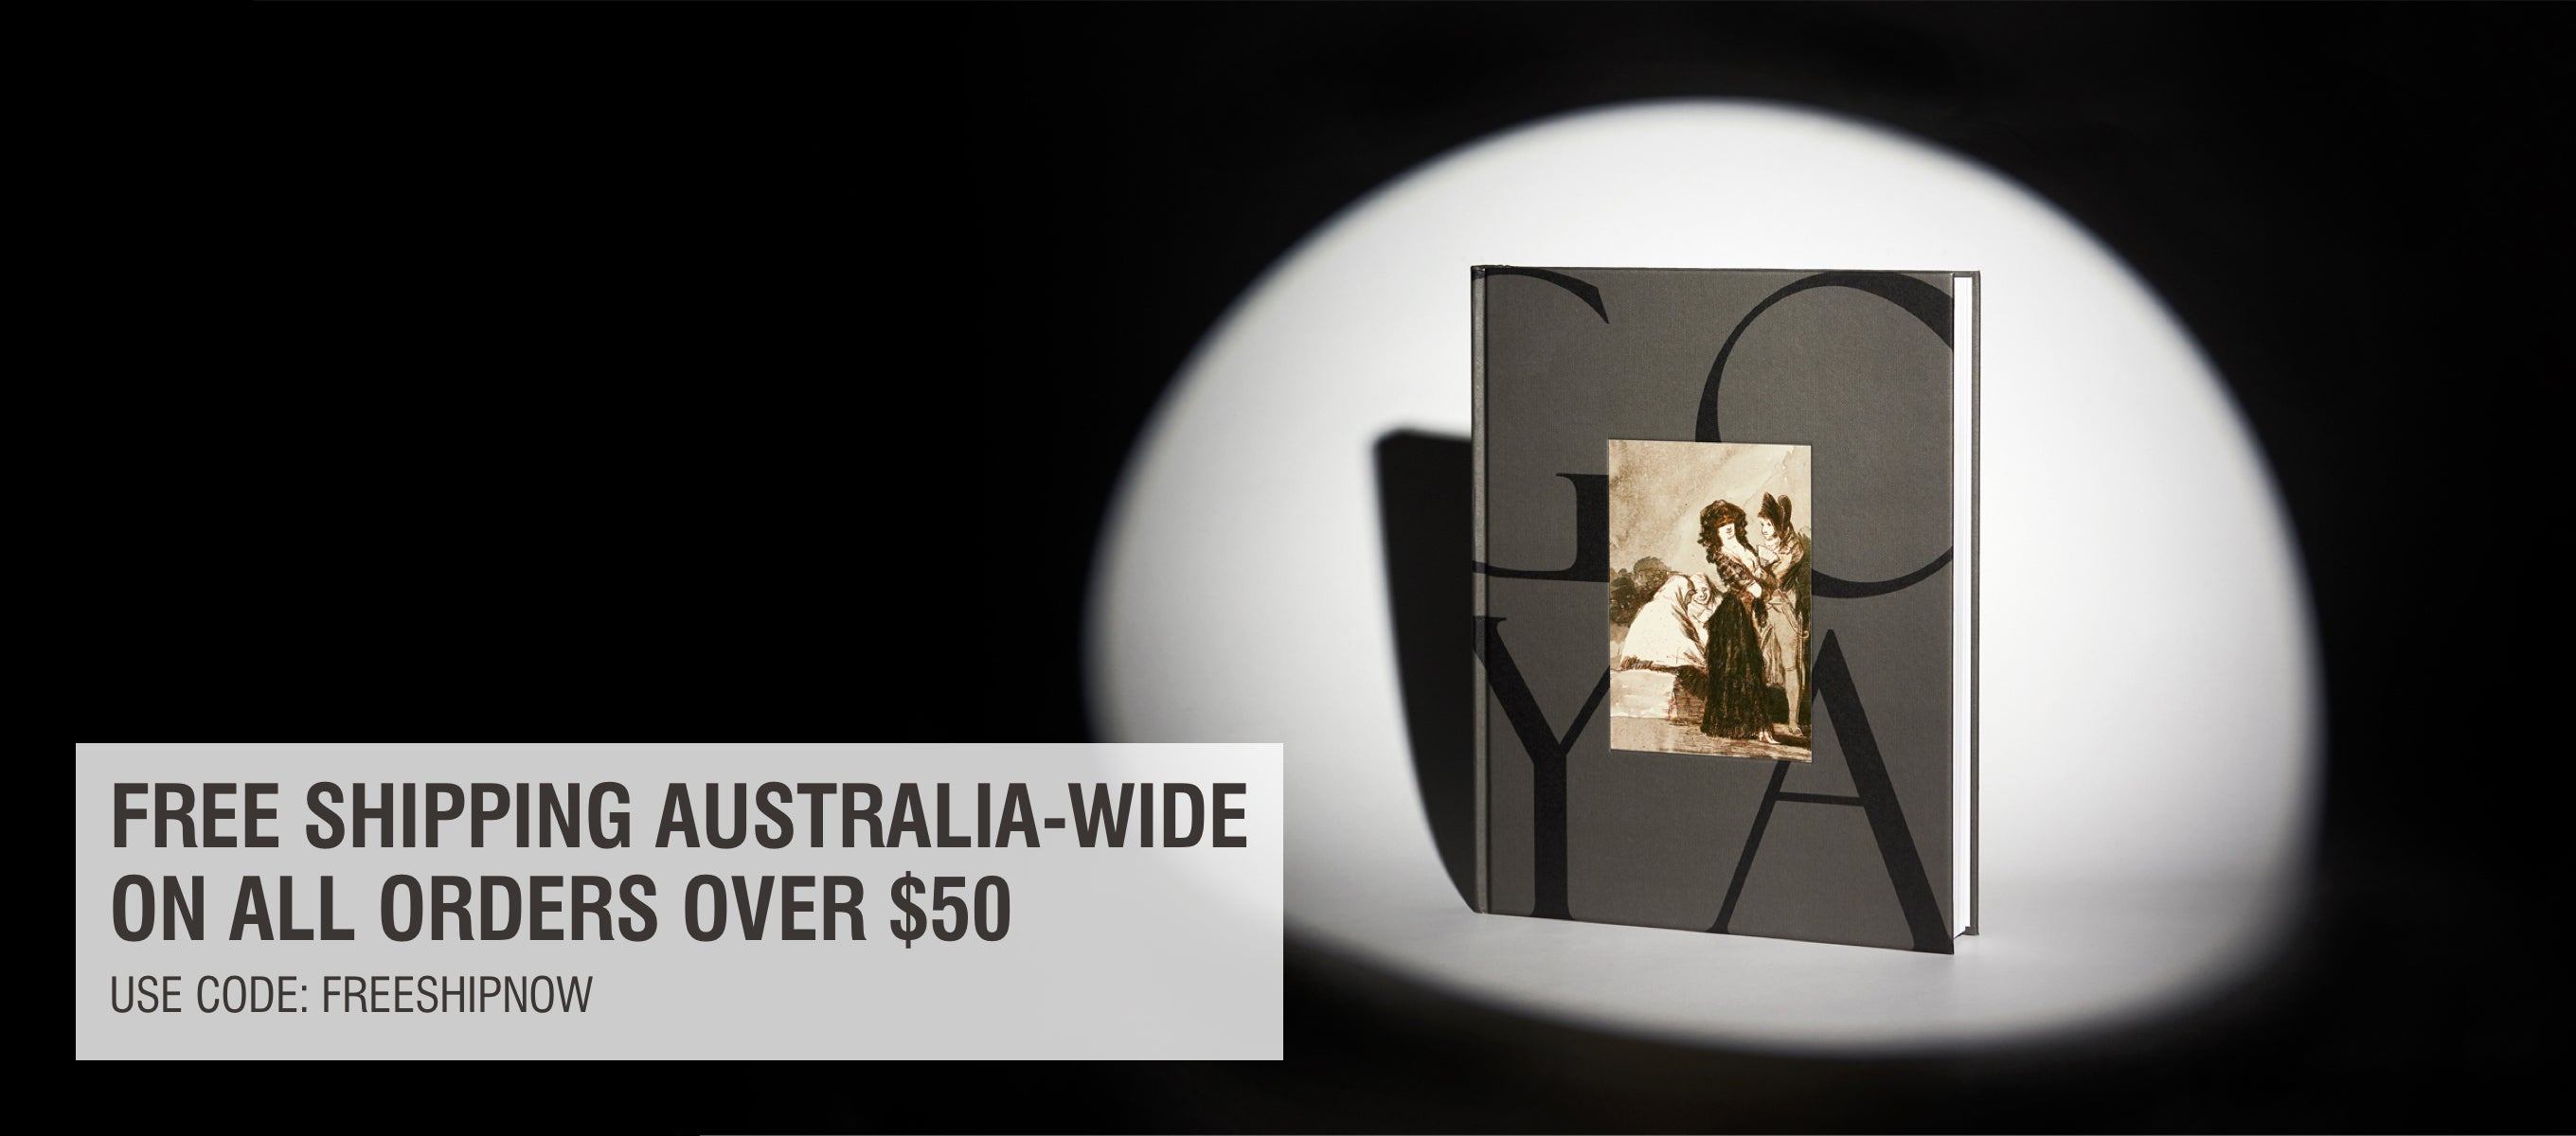 FREE SHIPPING ON ORDERS OVER $50 WITHIN AUSTRALIA